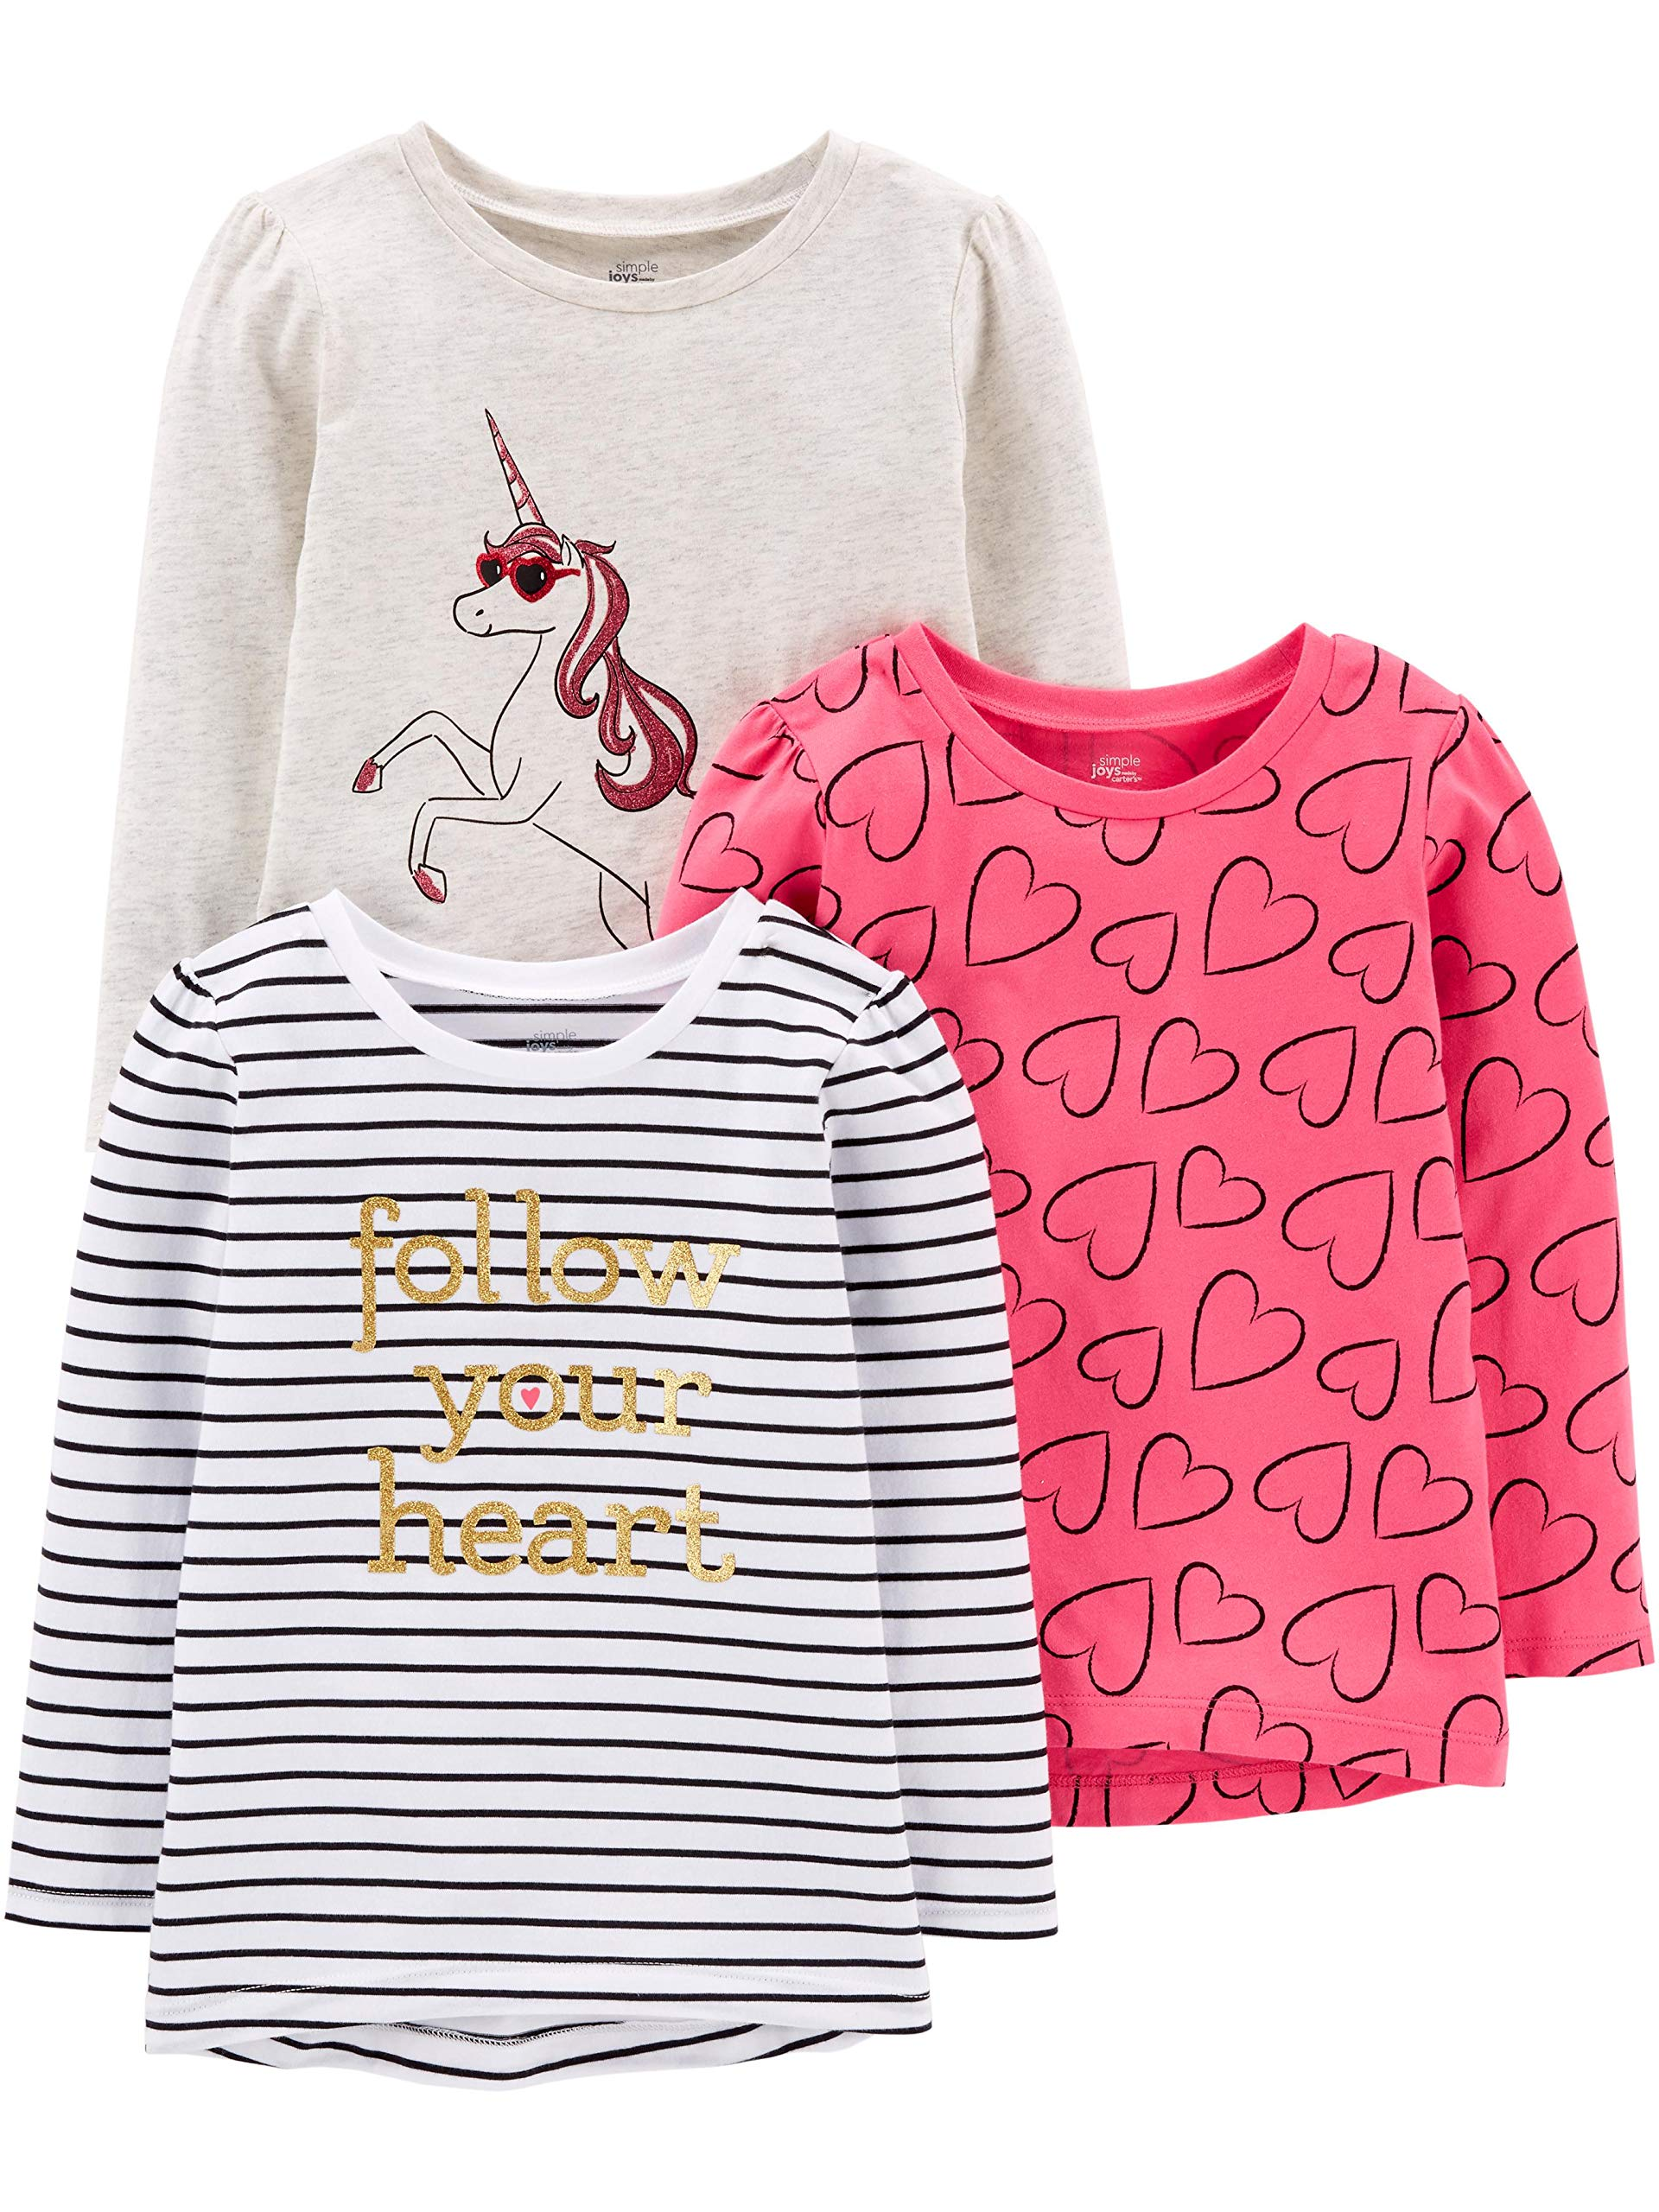 Simple Joys by Carter's Girls' Toddler 3-Pack.